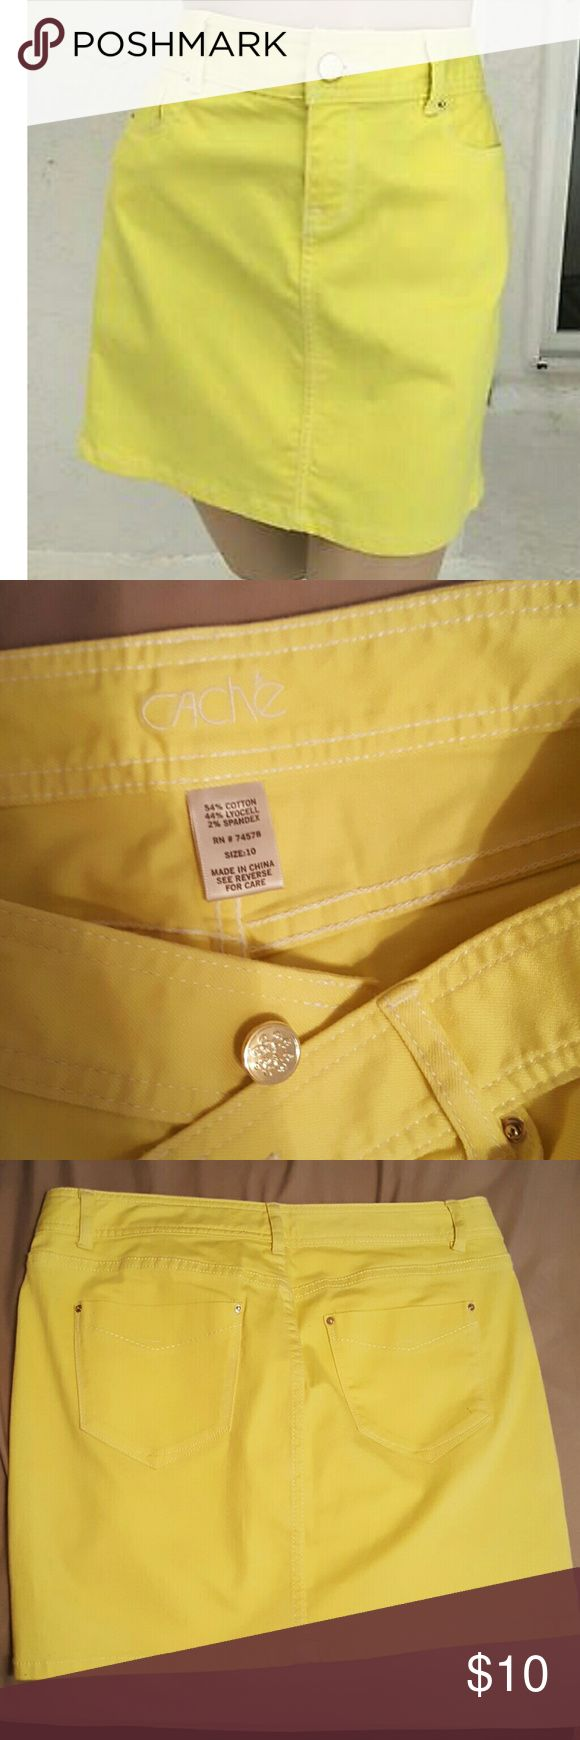 CACHE  cotton jean, Neon yellow mini skirt!! Used only a few times , basically new!!! Nothing wrong with it, no stains or tears, 54% cotton,  2% spandex and 44% lyocell.   Perfect skirt for summer or a nice spring day!!! 2 pockets in the back and zipper in the front. LOVELY! Cache Skirts Mini